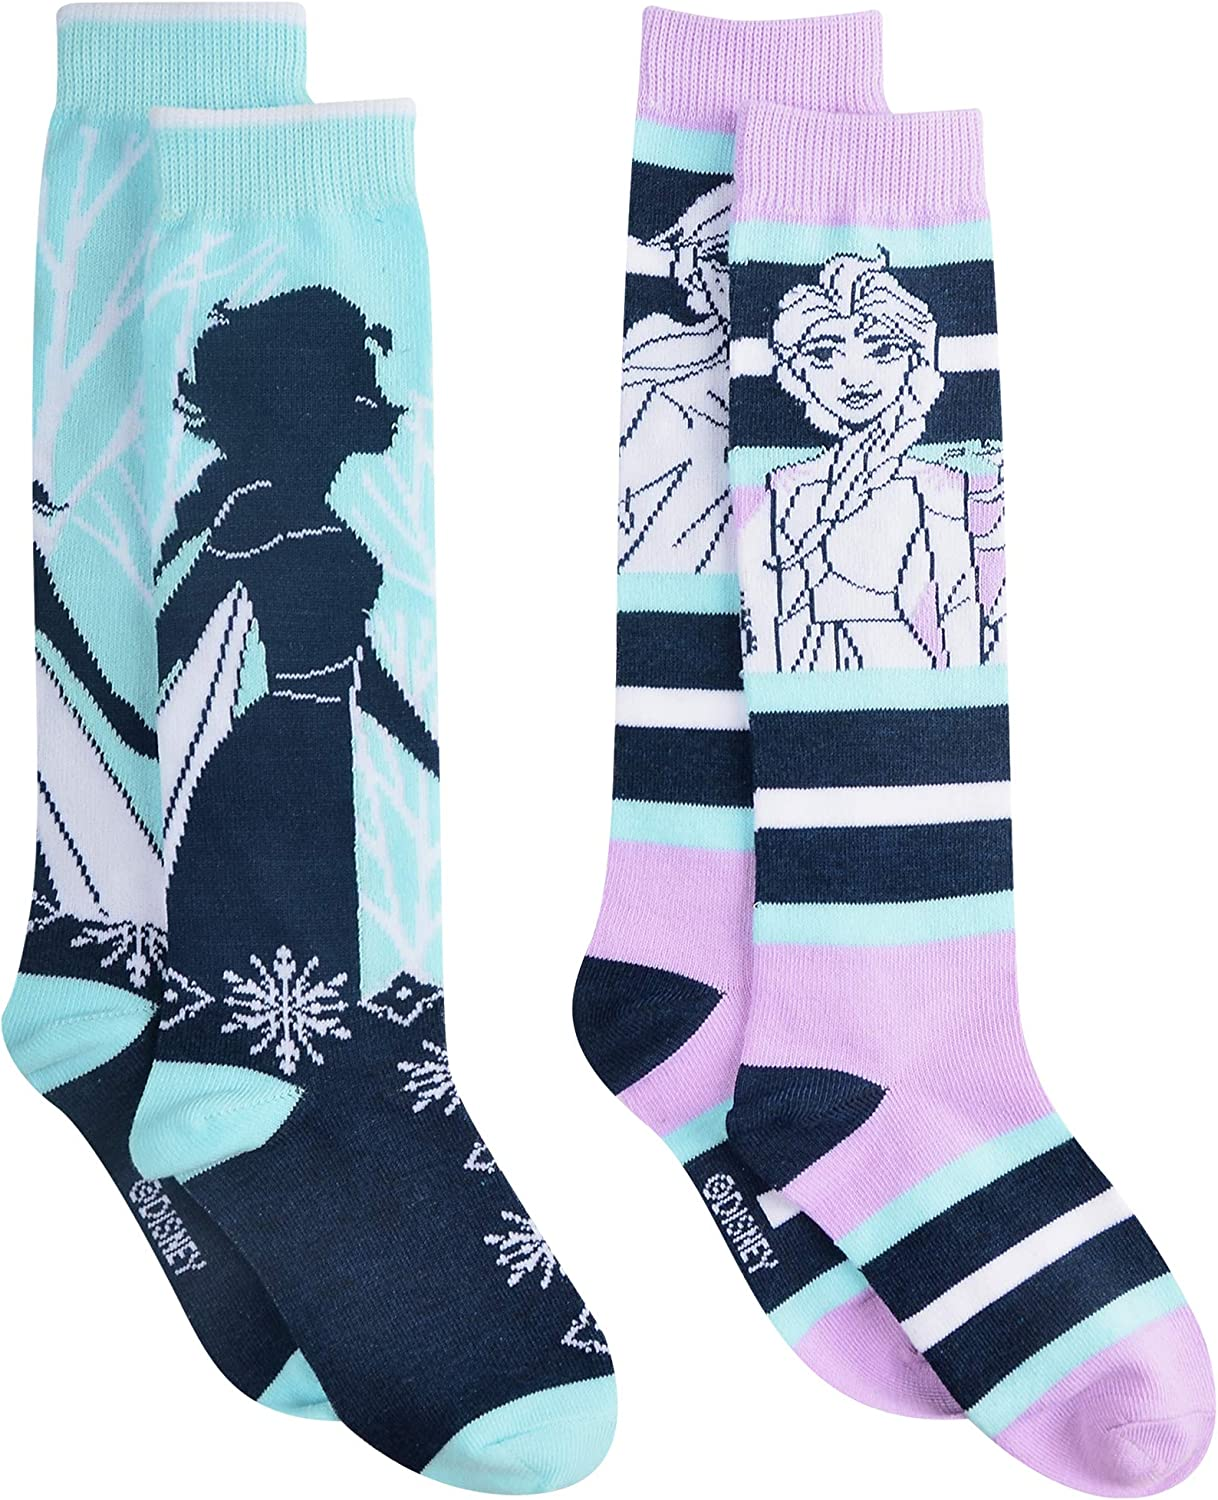 3PAIR Girls Children Kids Frozen Elsa Anna short low cut Socks 7-10 years